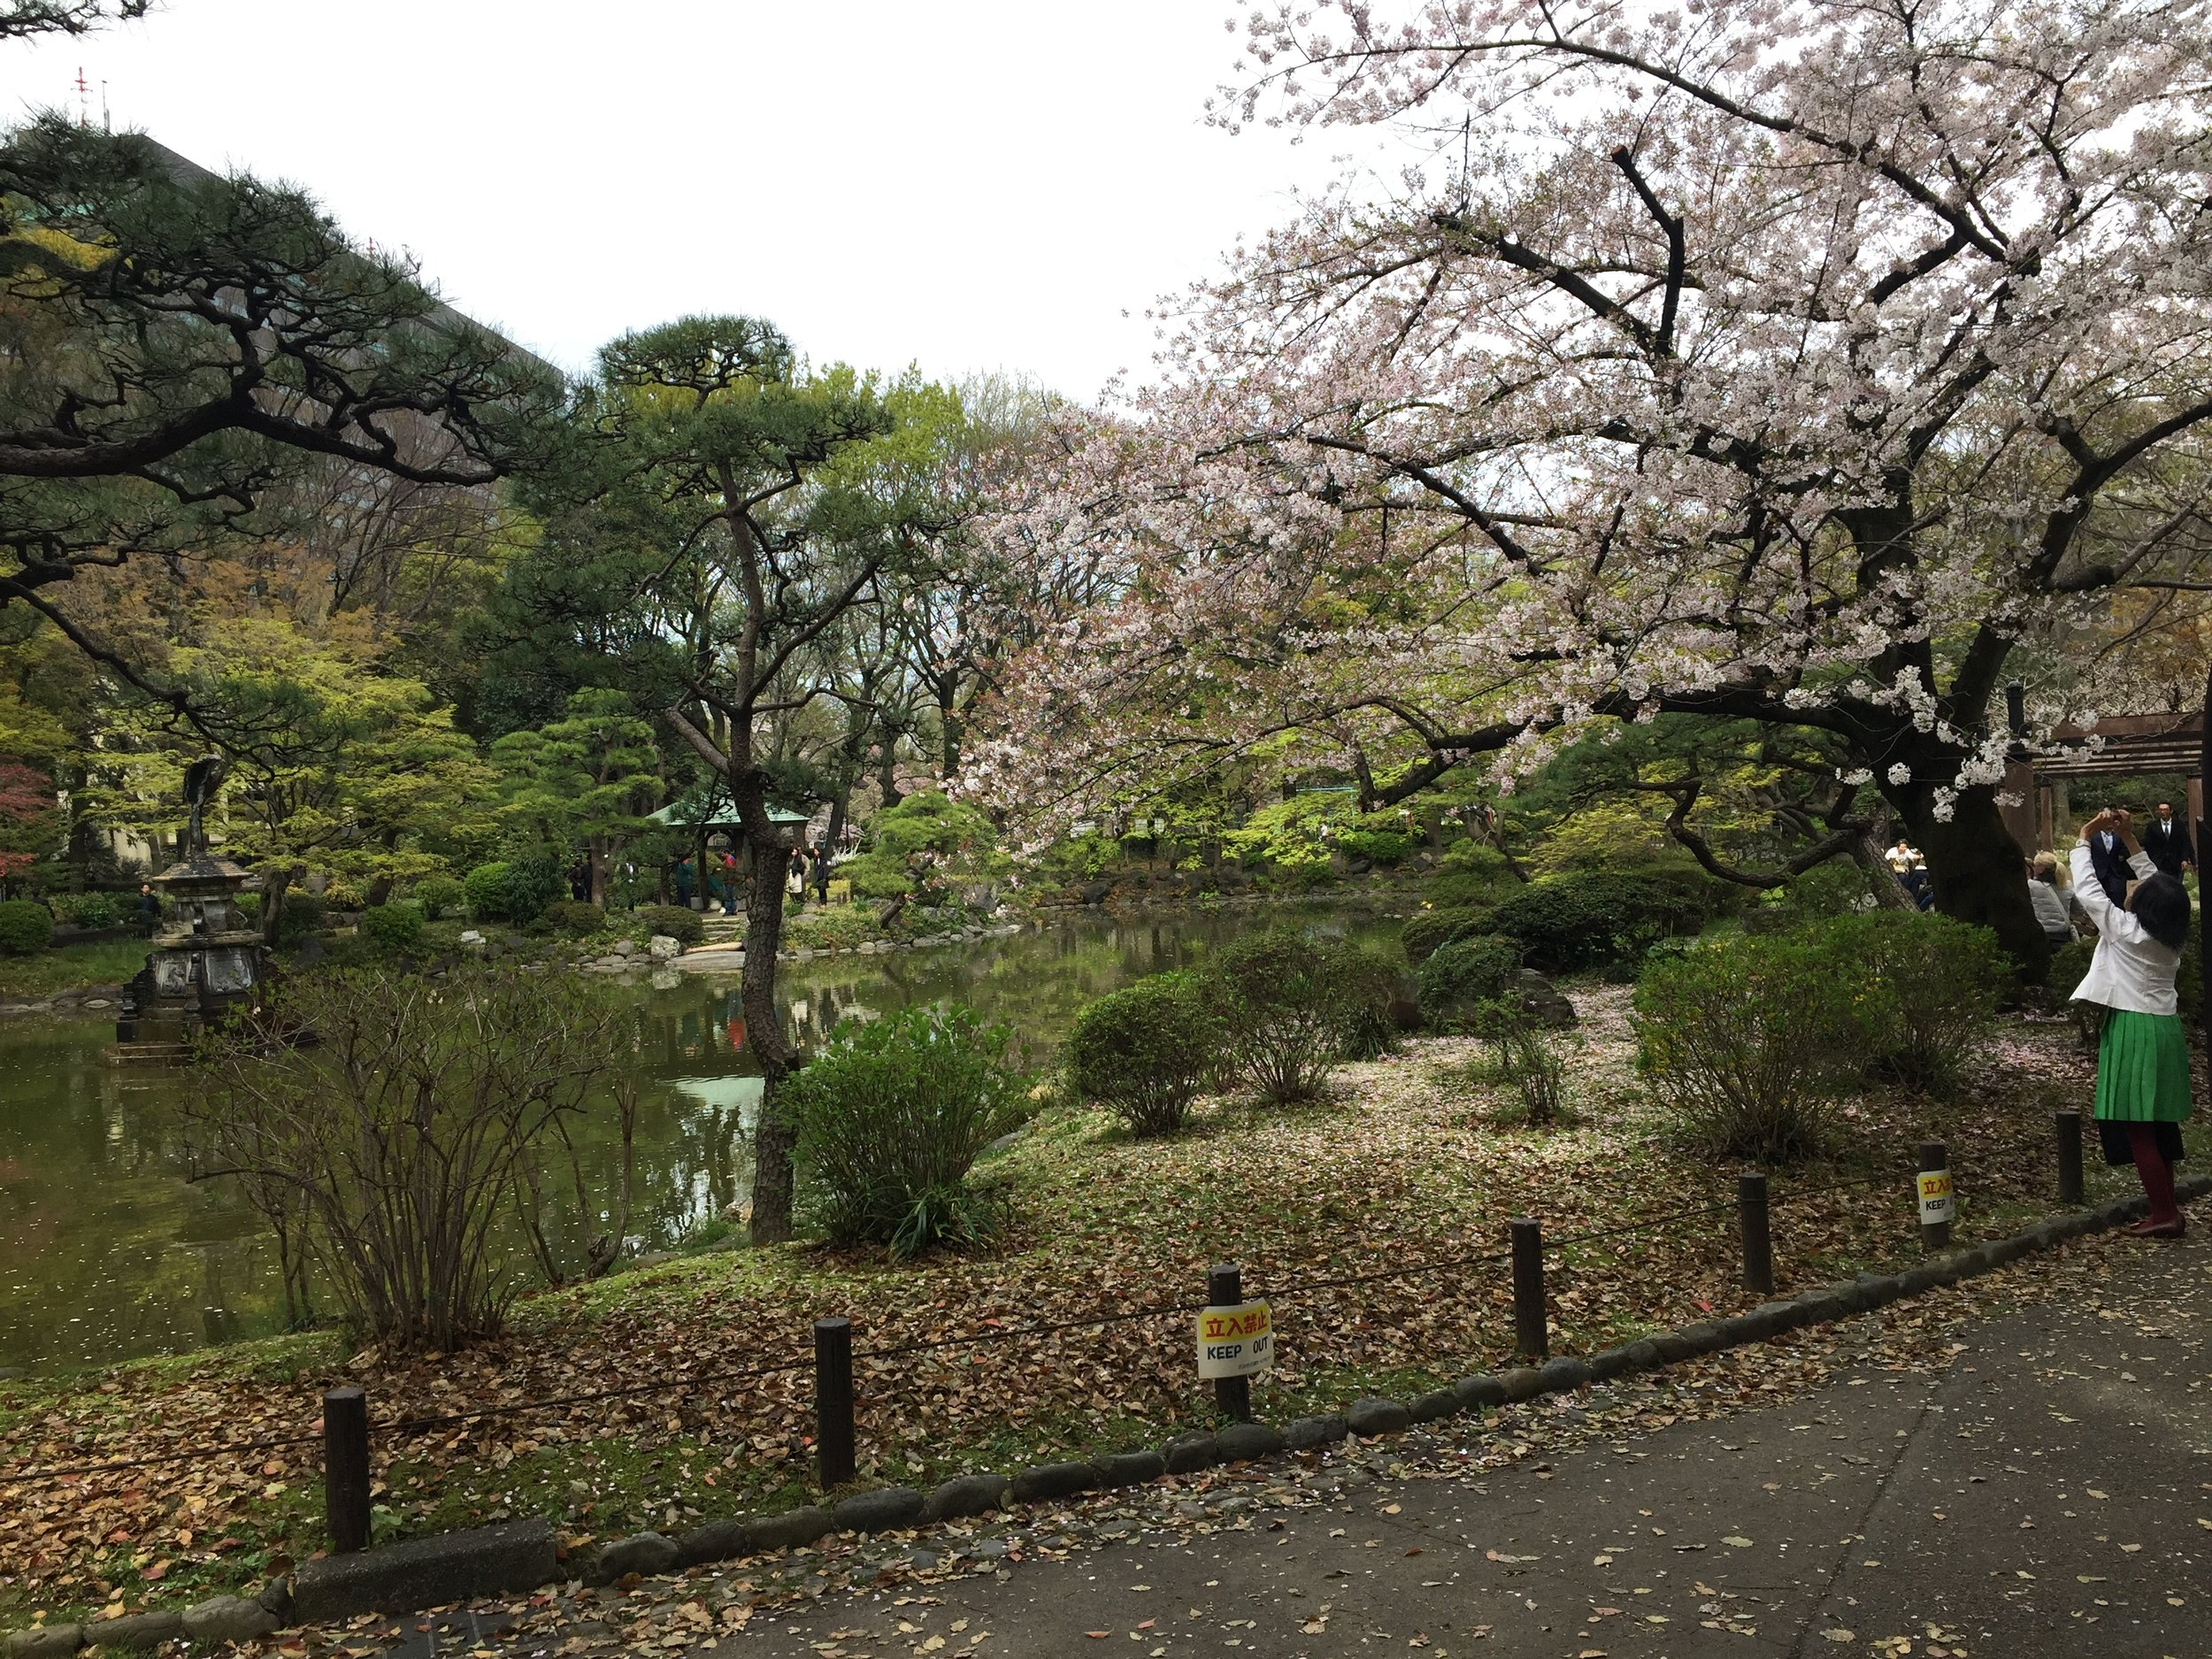 waiting for our room, we have a soba lunch, and then pop into a park to remind us where we are